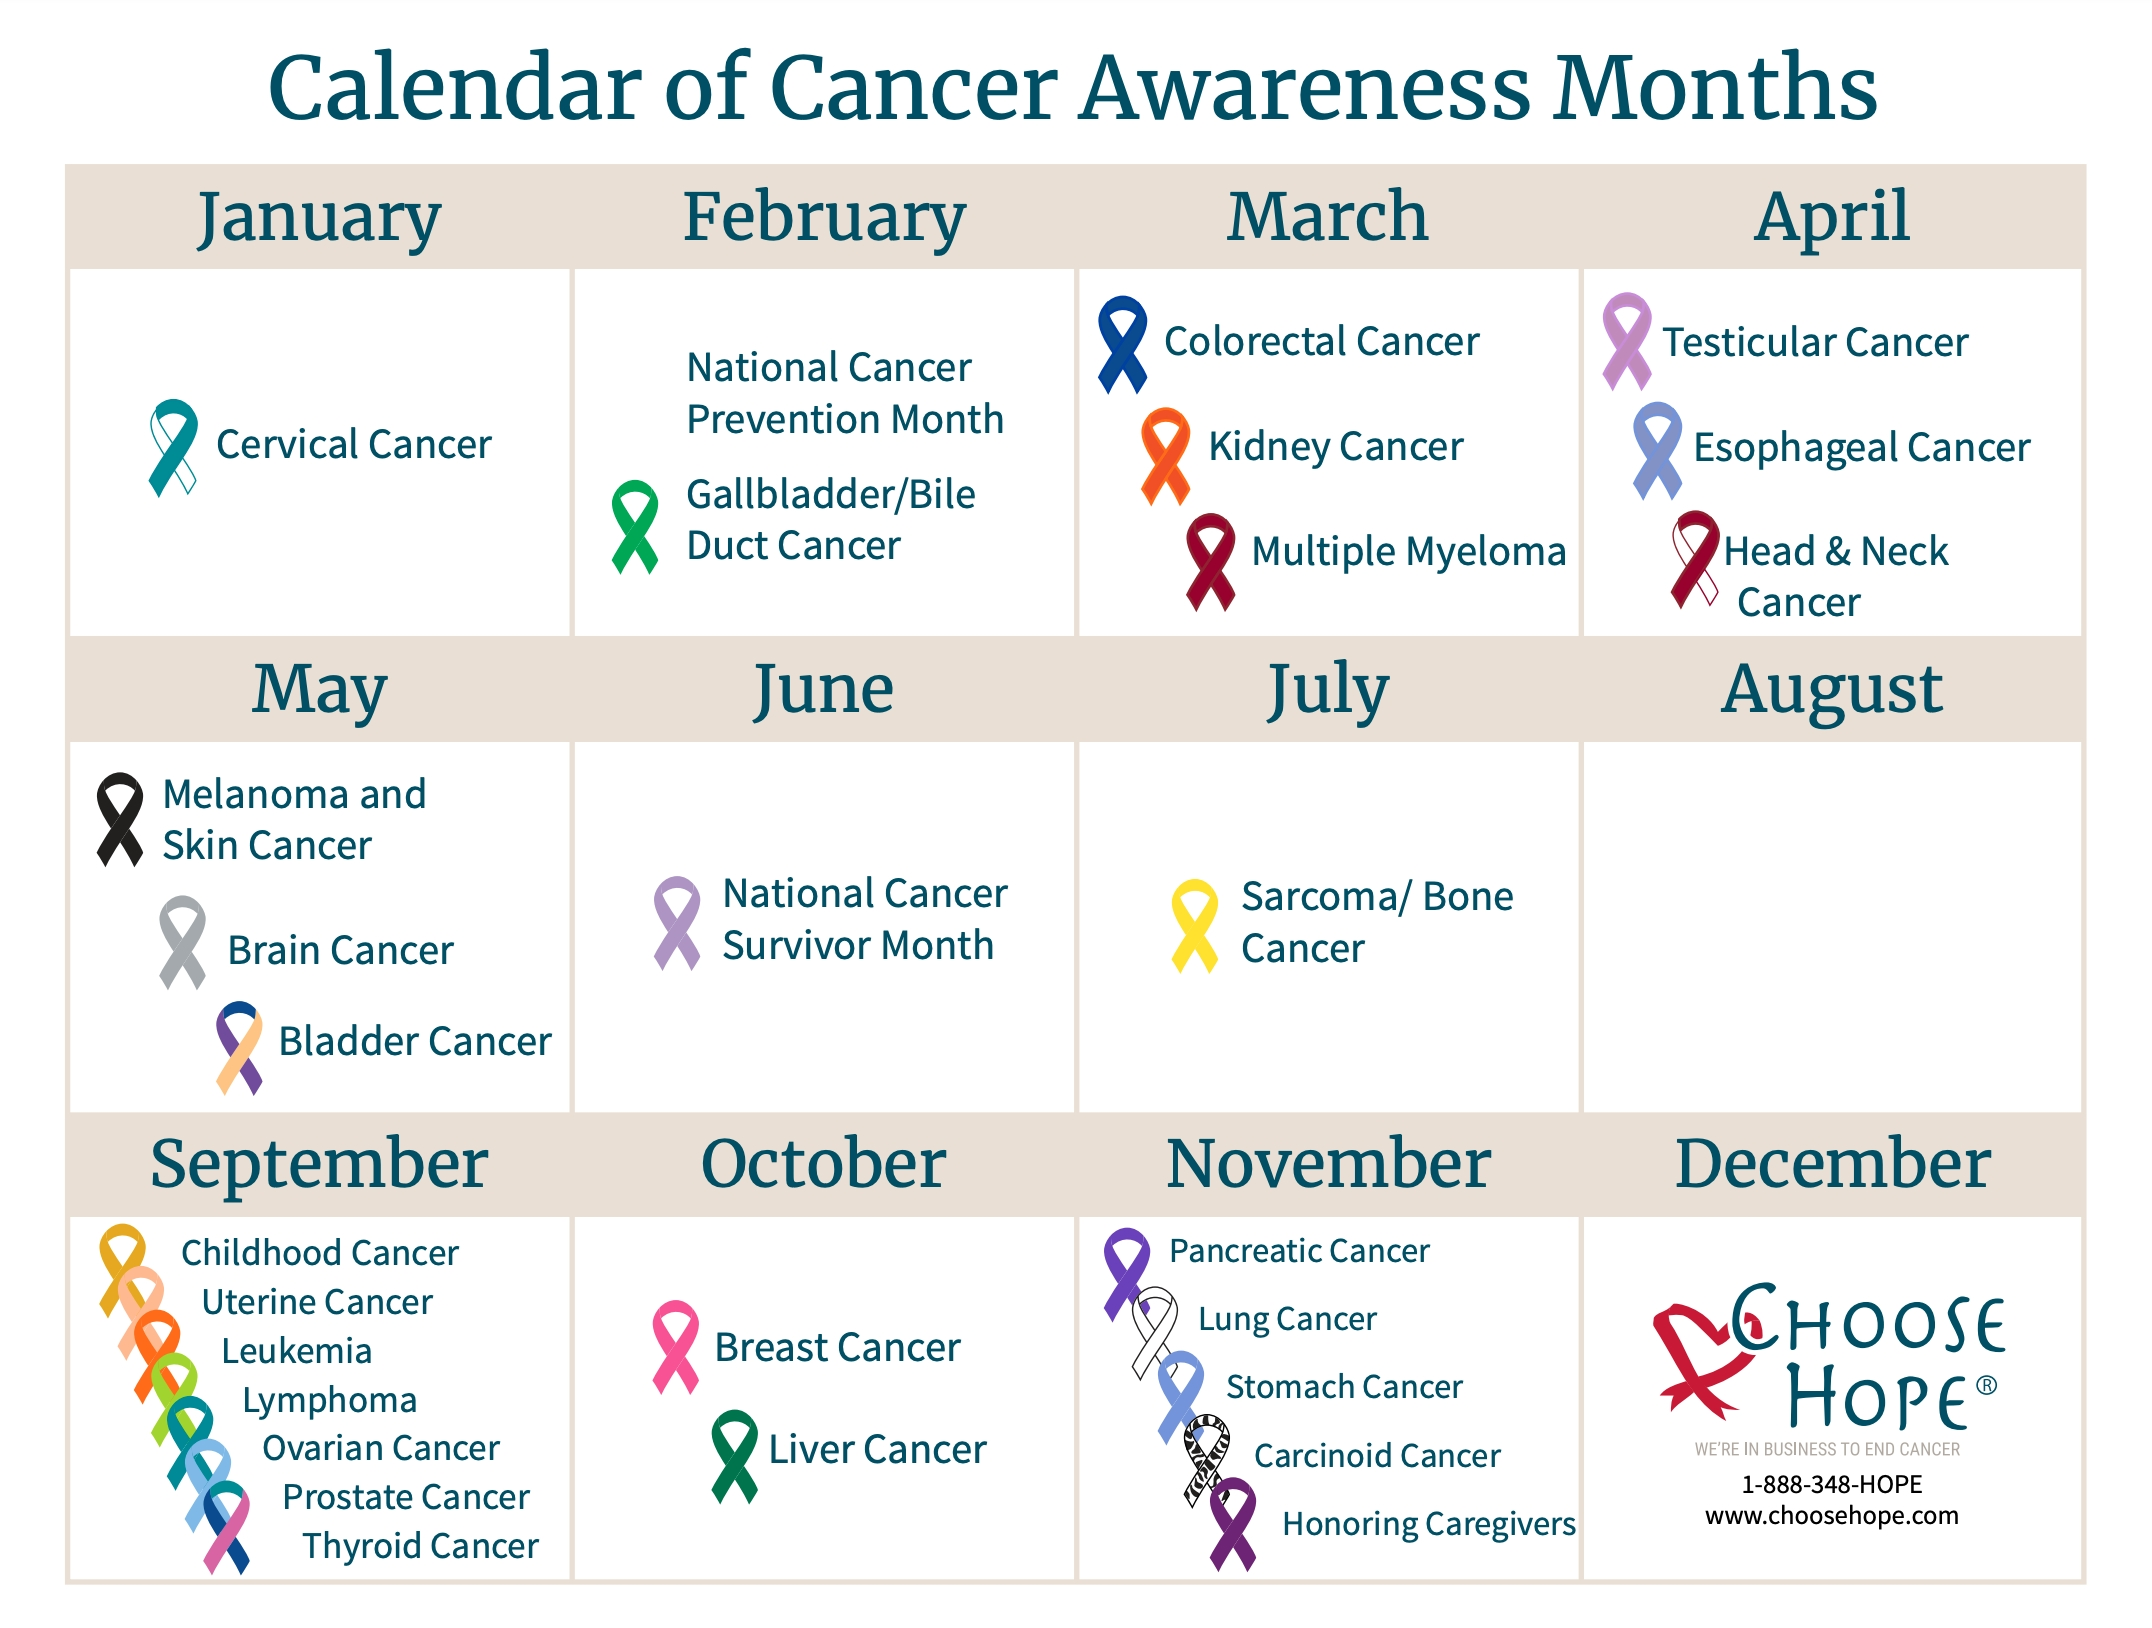 cancer awareness months calendar and ribbon colors | choose hope